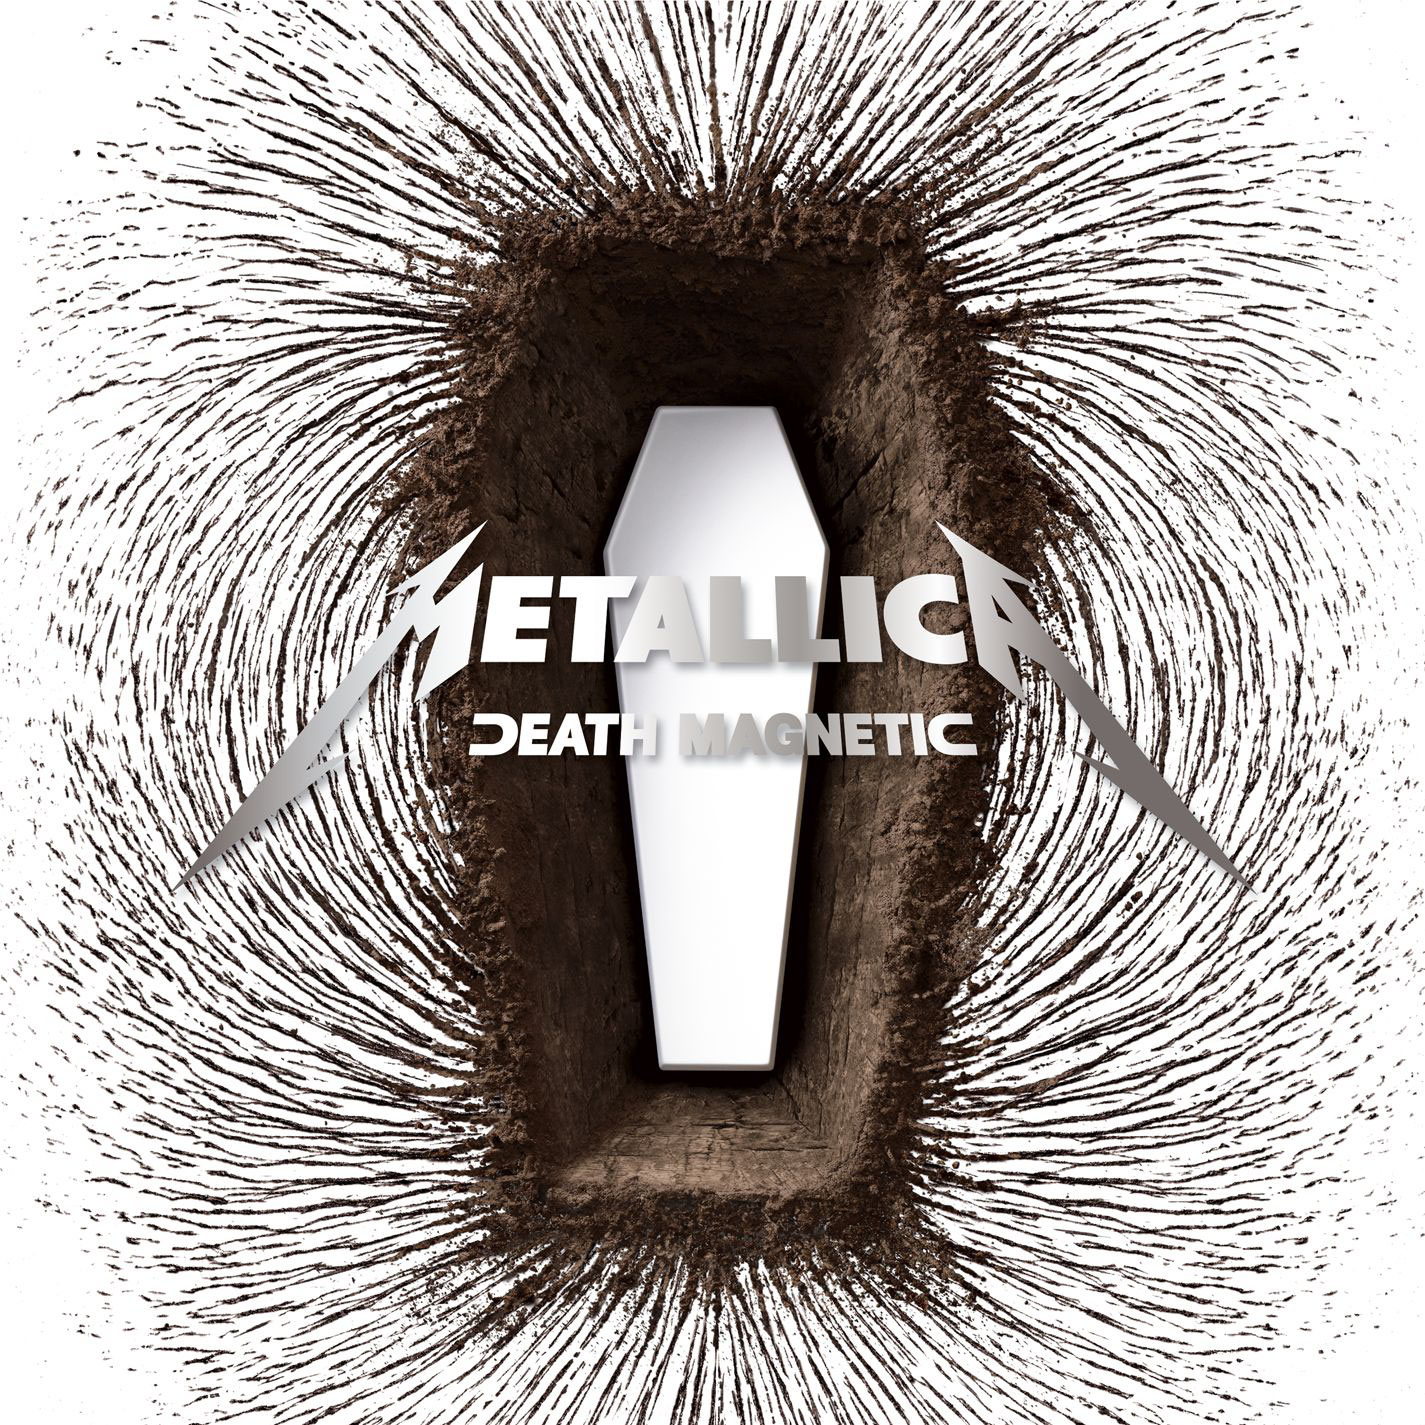 death magnetic tattoo - photo #34